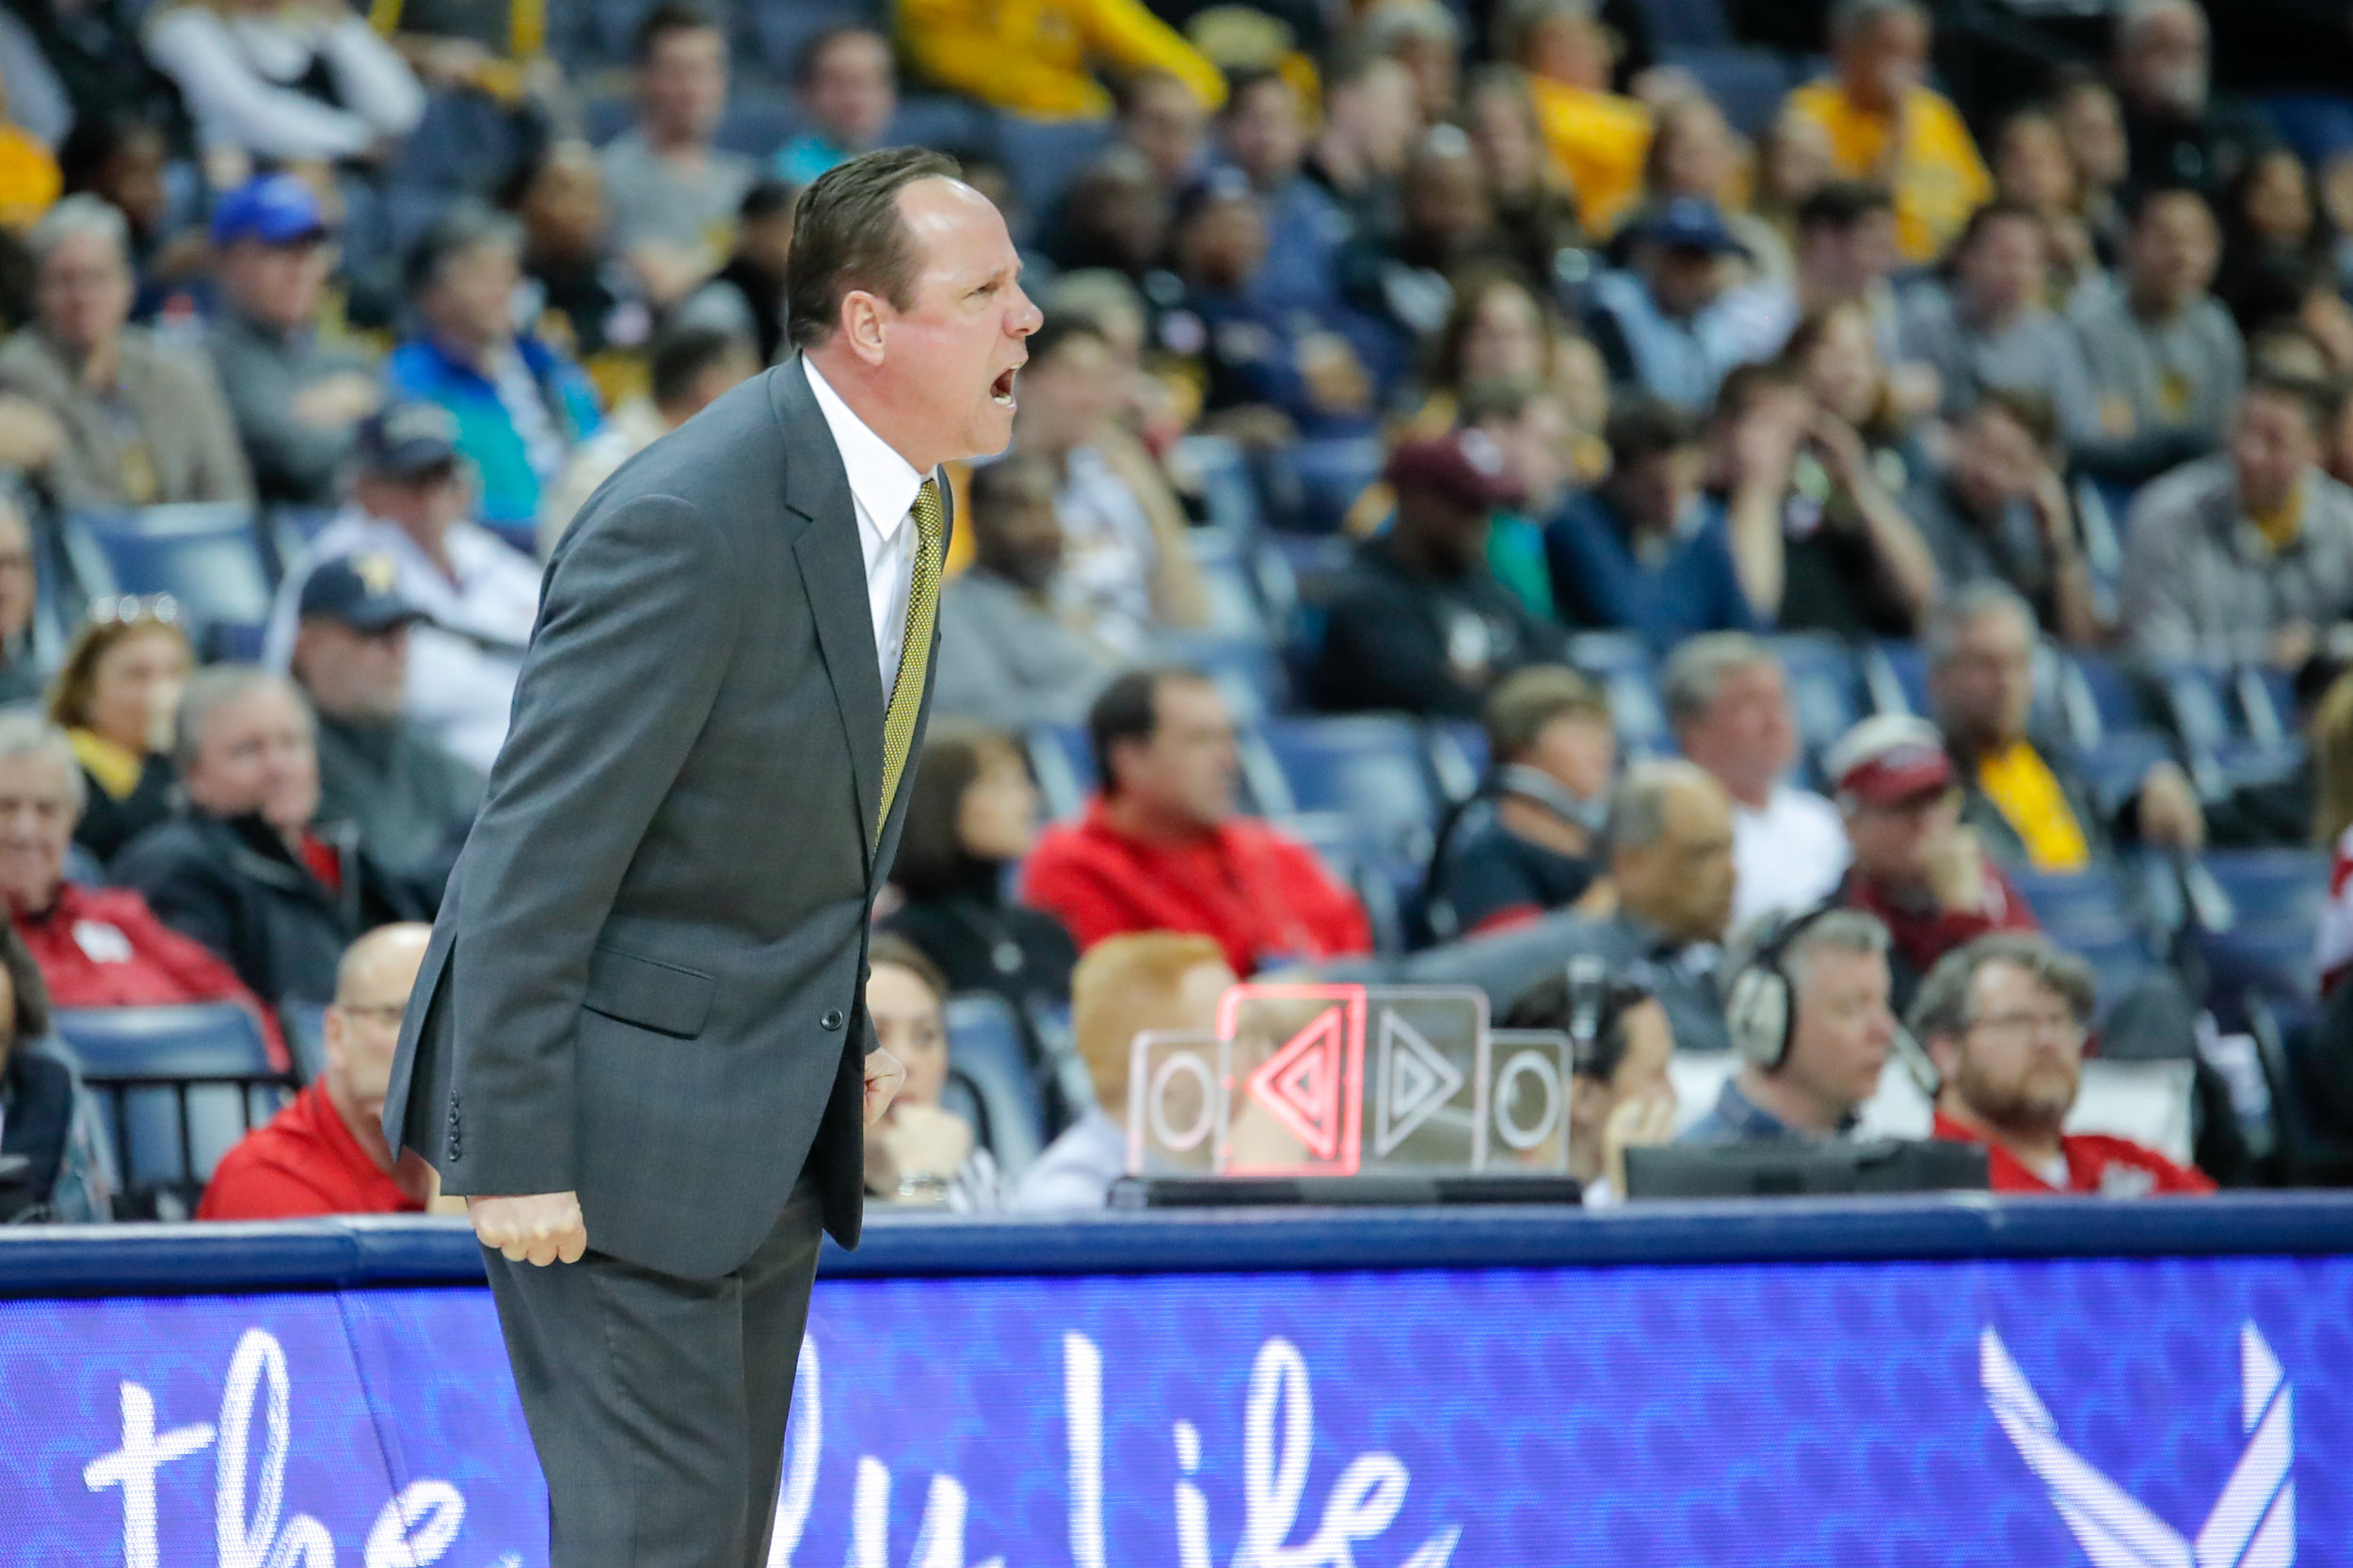 Coach Gregg Marshall screams towards the ref after a controversial call during the second half of the game against Temple on March 15, 2019 at the FedExForum in Memphis, Tennessee. (Photo by Joseph Barringhaus/The Sunflower).